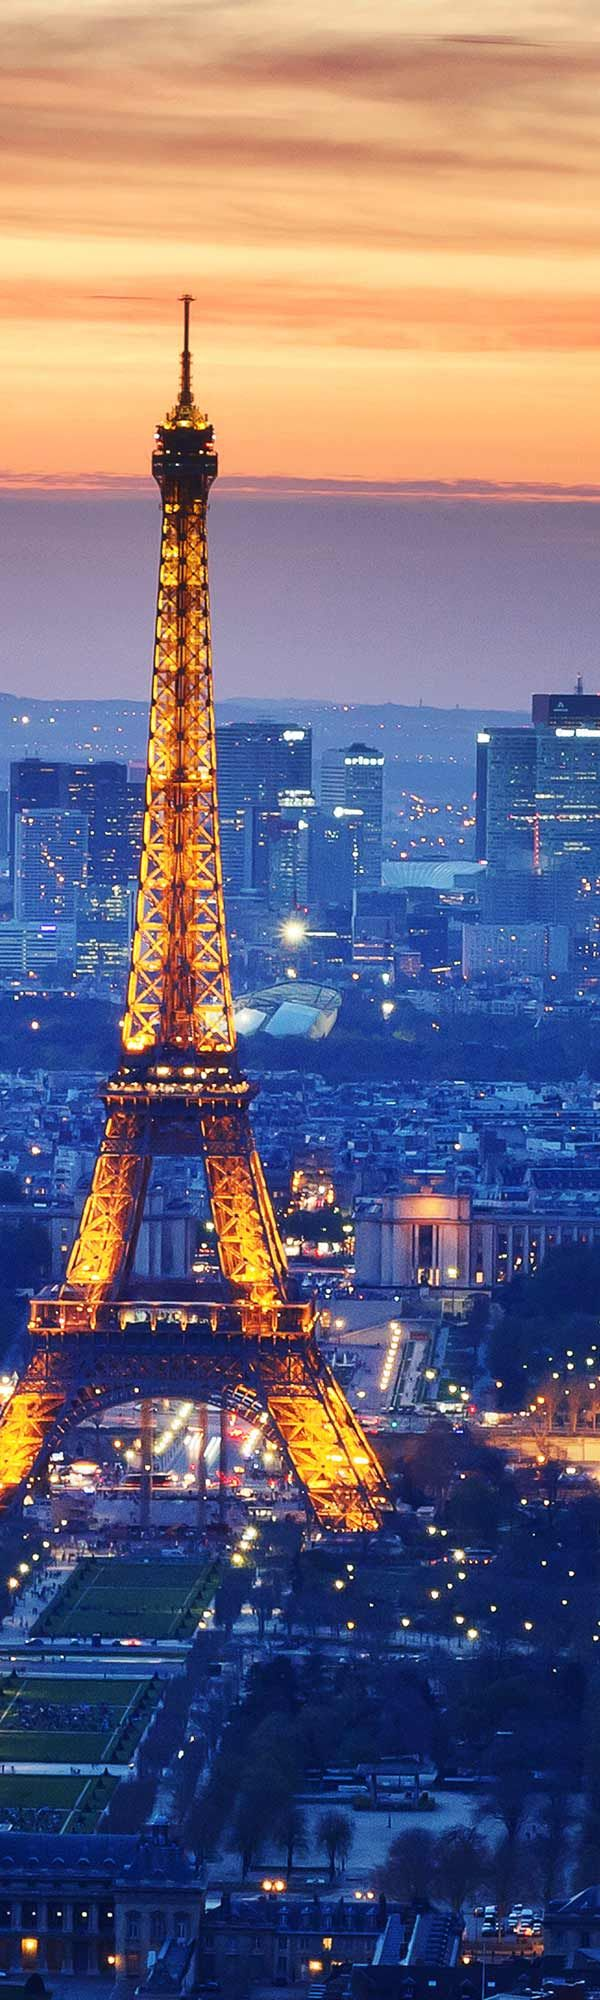 Surprise your wino with a trip to Paris. O Chateau is known as the #1 destination for wine tastings in Paris.